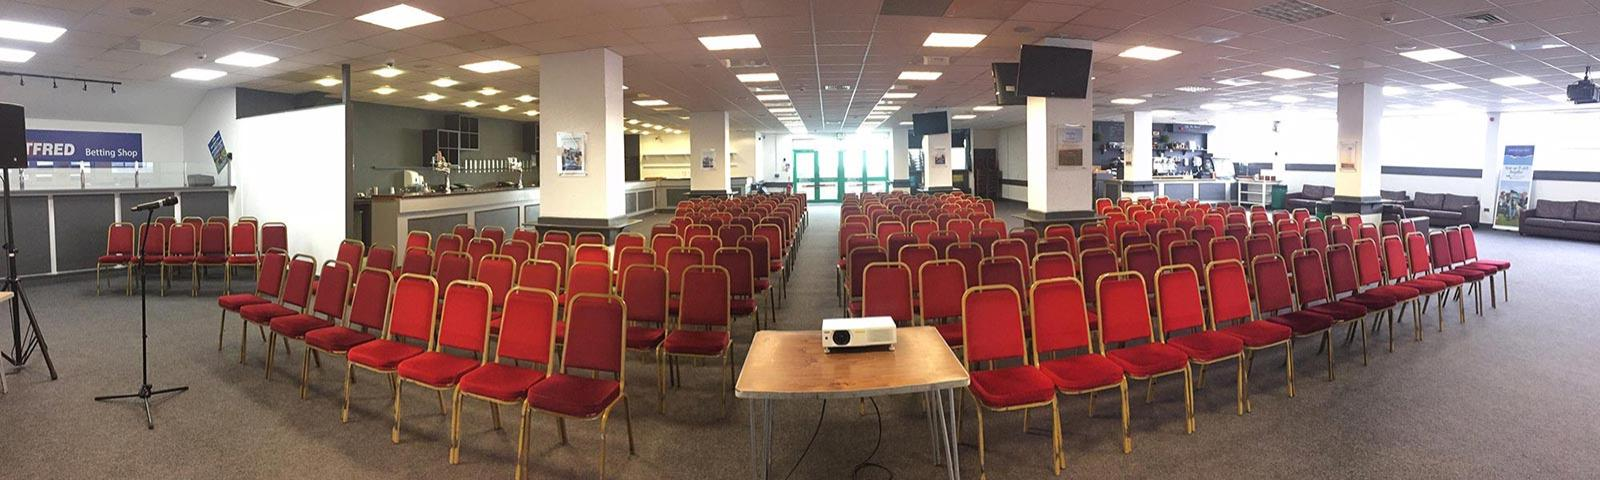 A view of one of Brighton Racecourse' conference rooms fully seated with audio and video equipment ready for guests to arrive